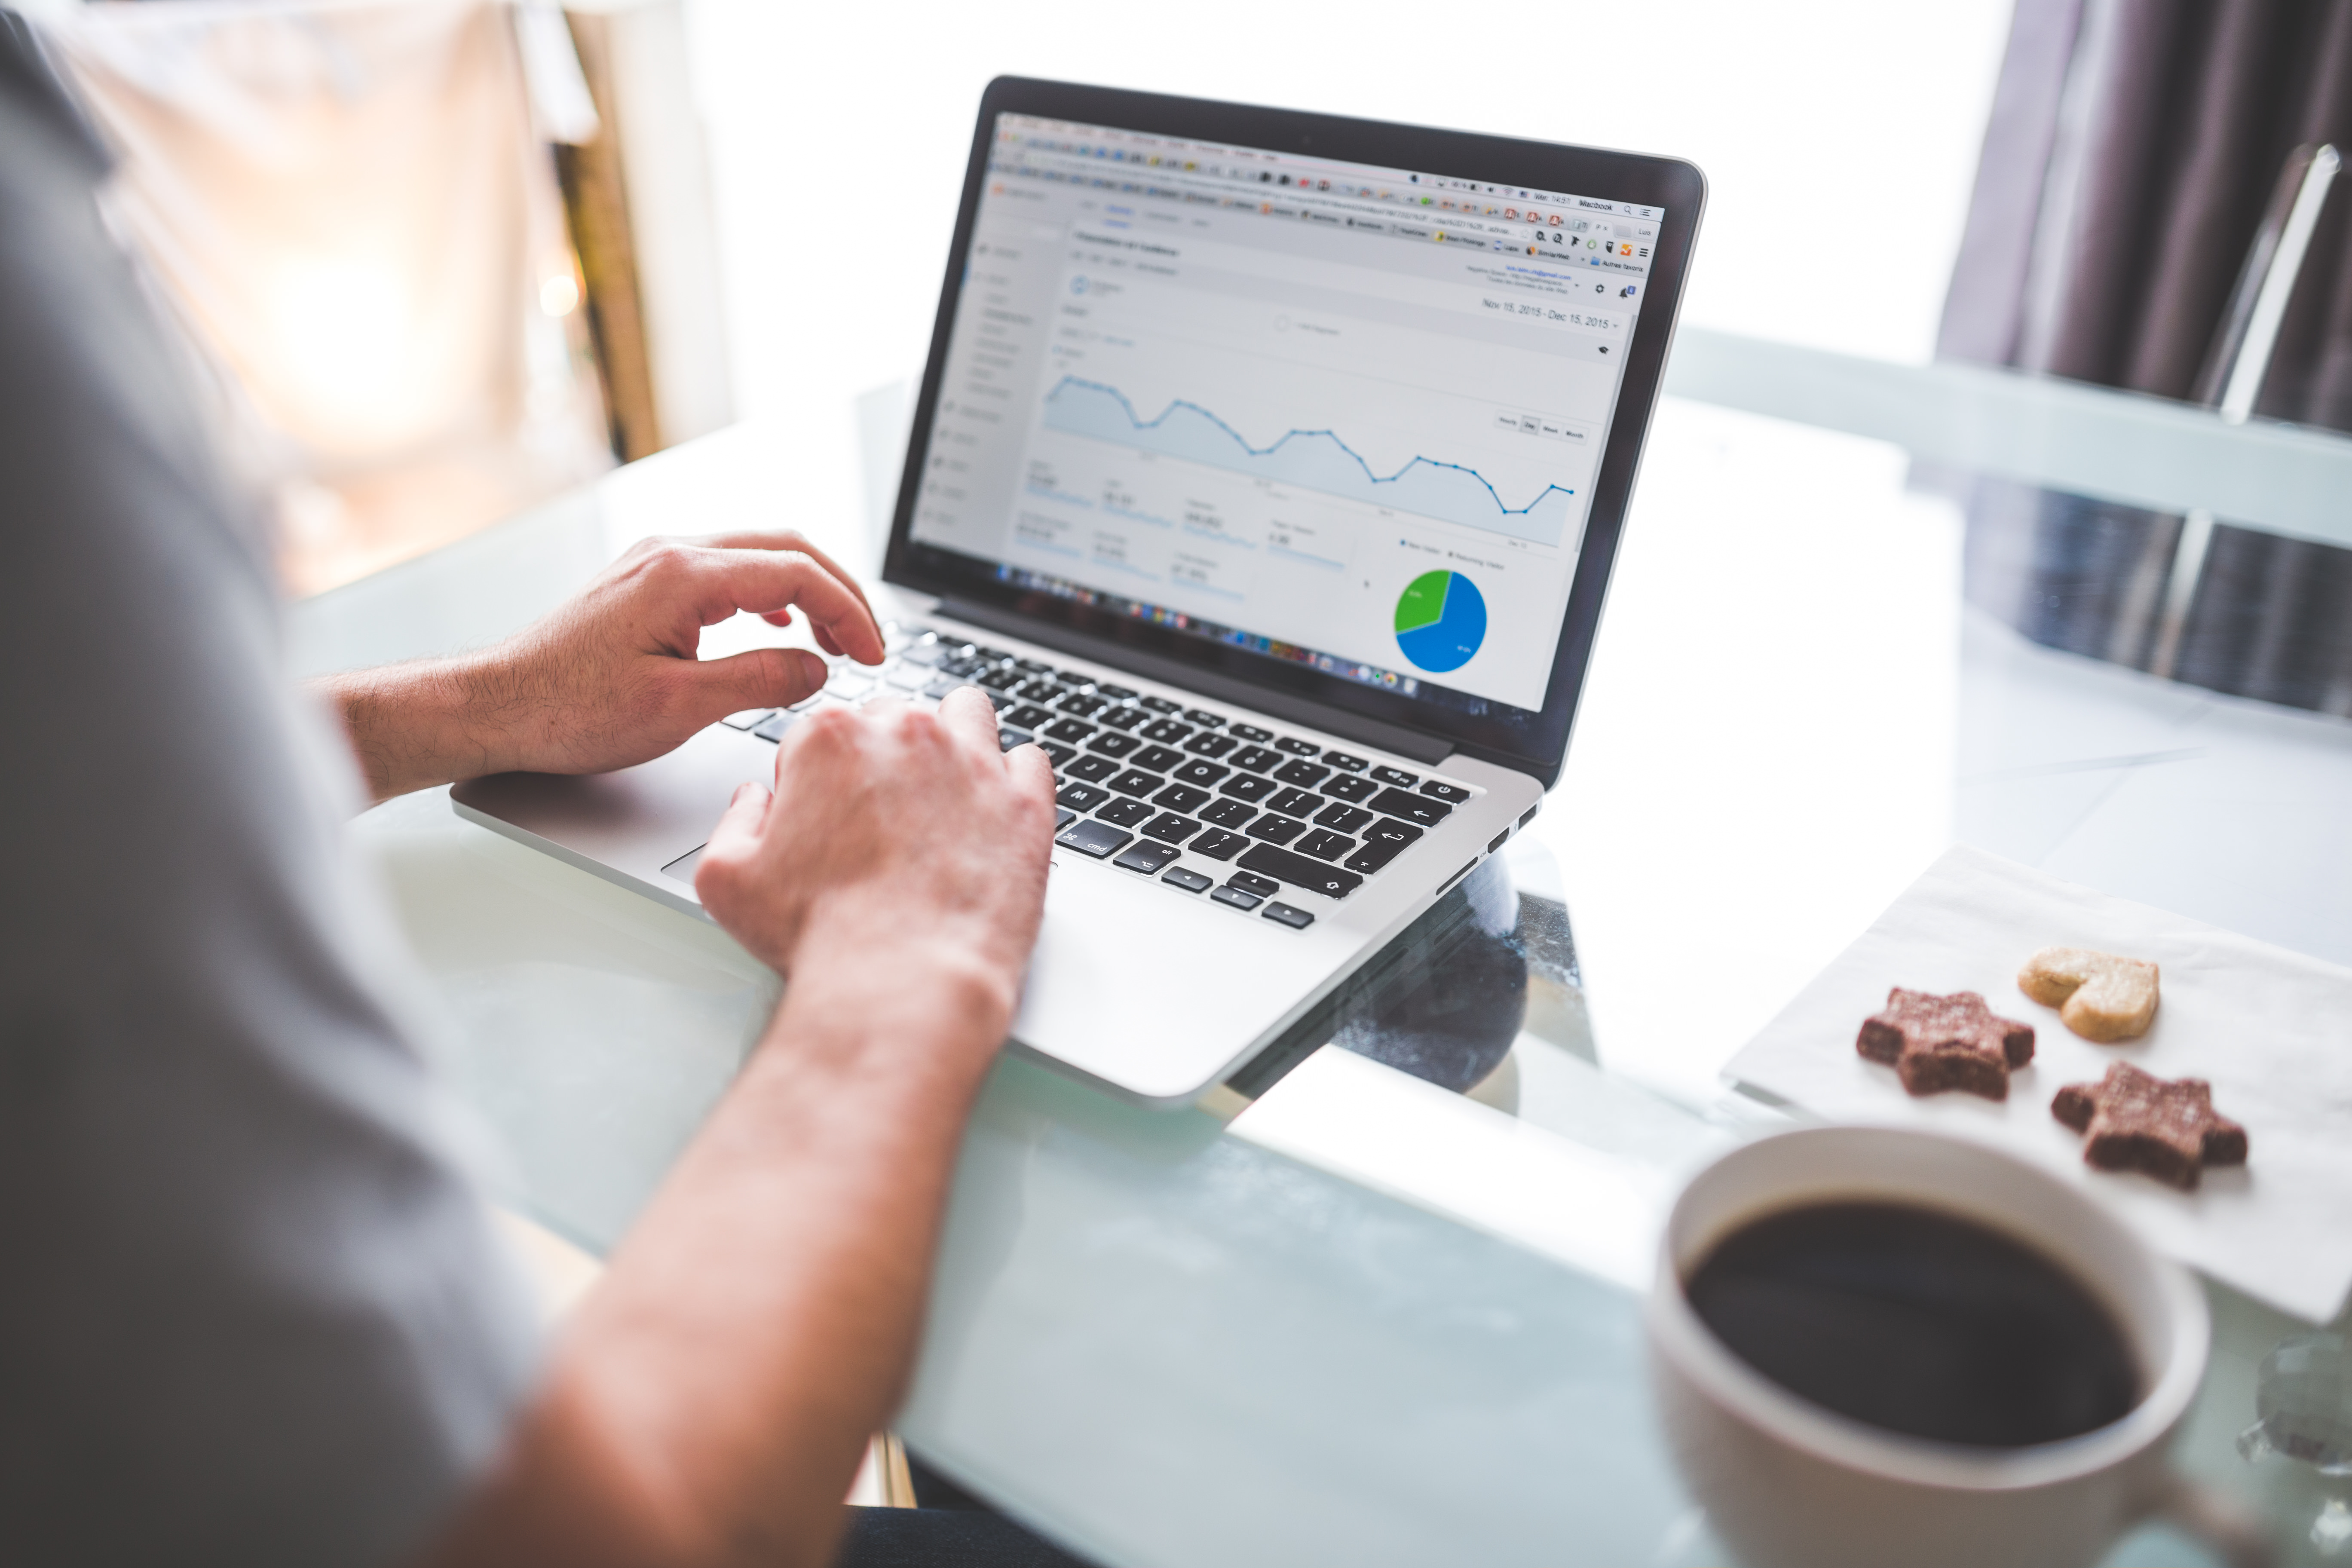 Use Key Performance Indicators to help your business grow